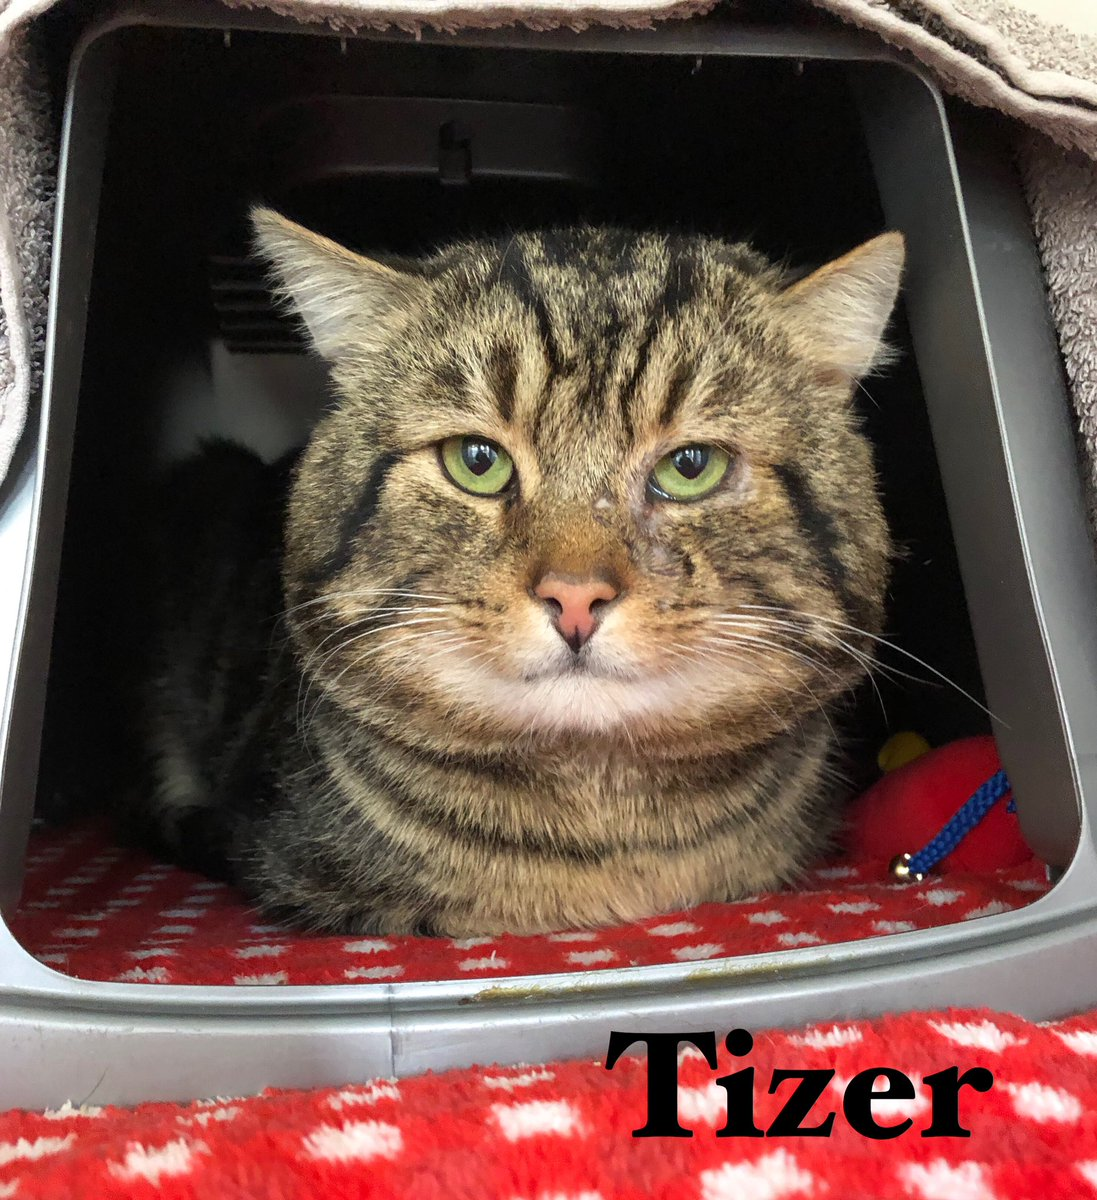 Happy #tabbytuesday from Tizer. He's 4 years old and has been at the shelter a while now. He was very wary when he first arrived but is settling down now. He's very vocal and loves his food - who can resist that face? 😻 #rescuecat #walthamabbey